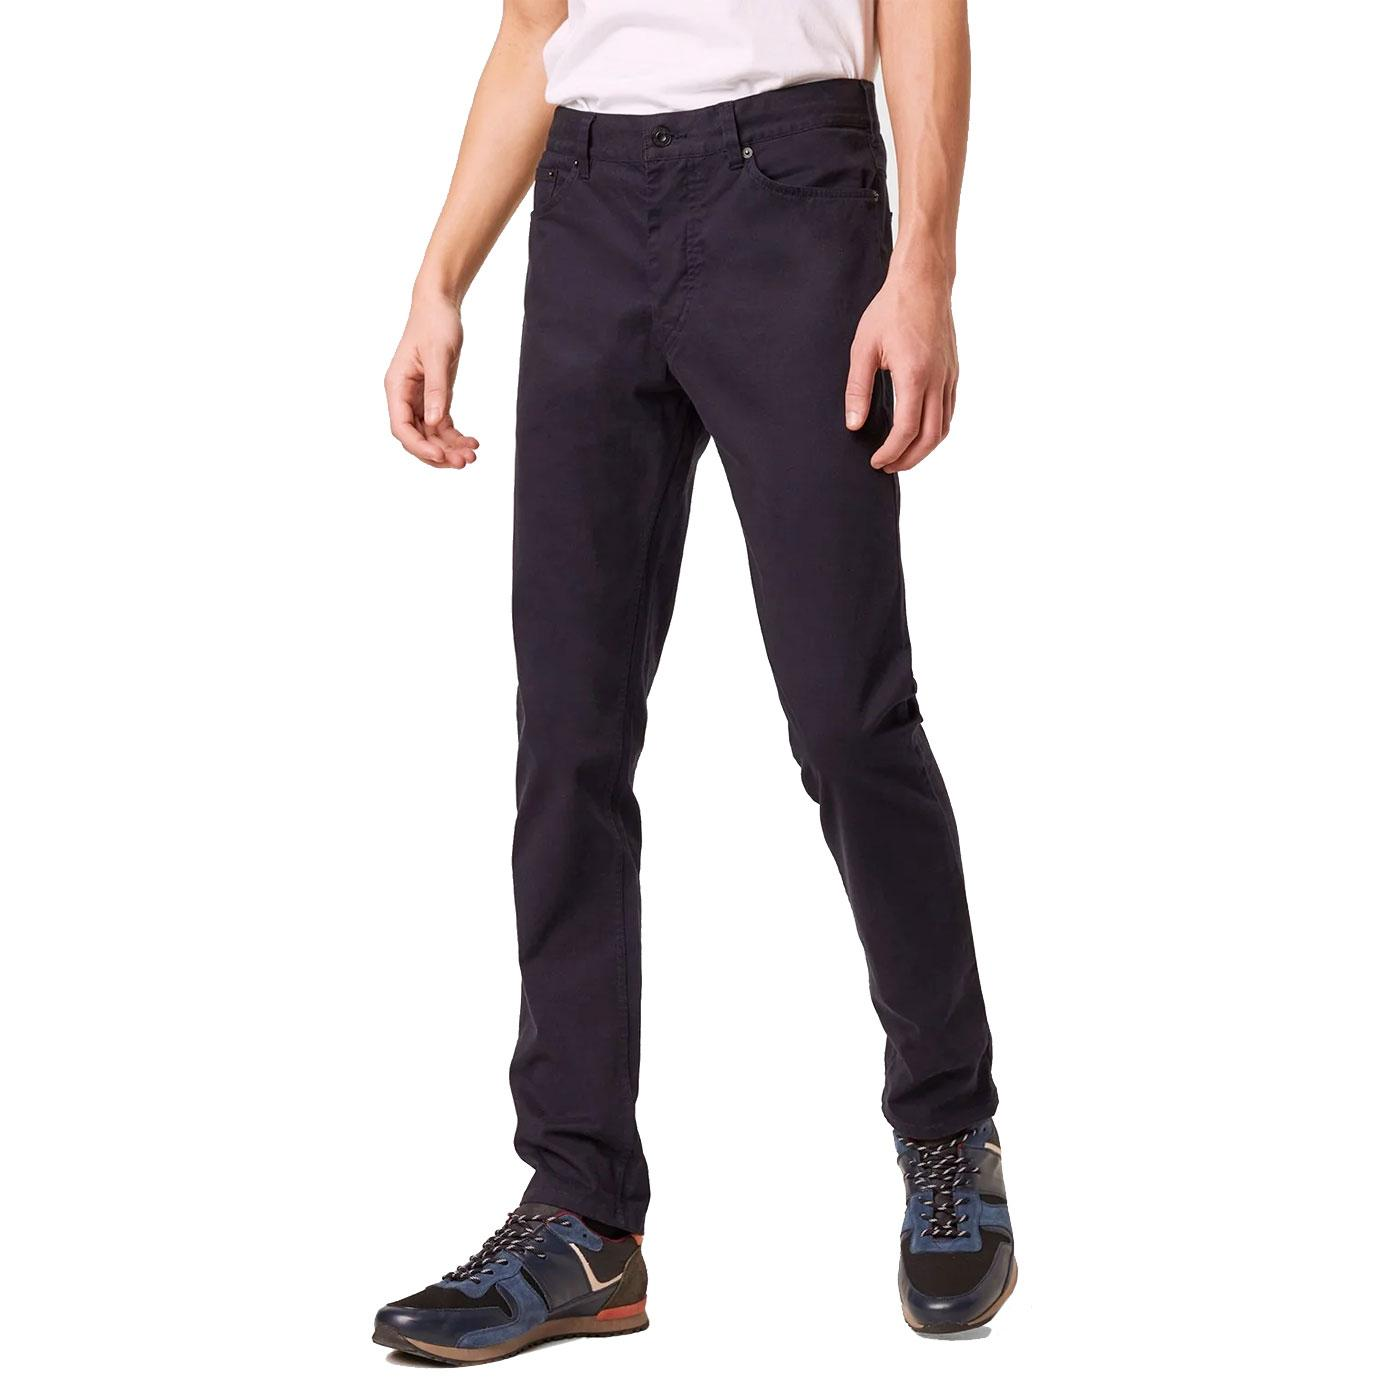 FRENCH CONNECTION Men's Slim Machine Stretch Jeans